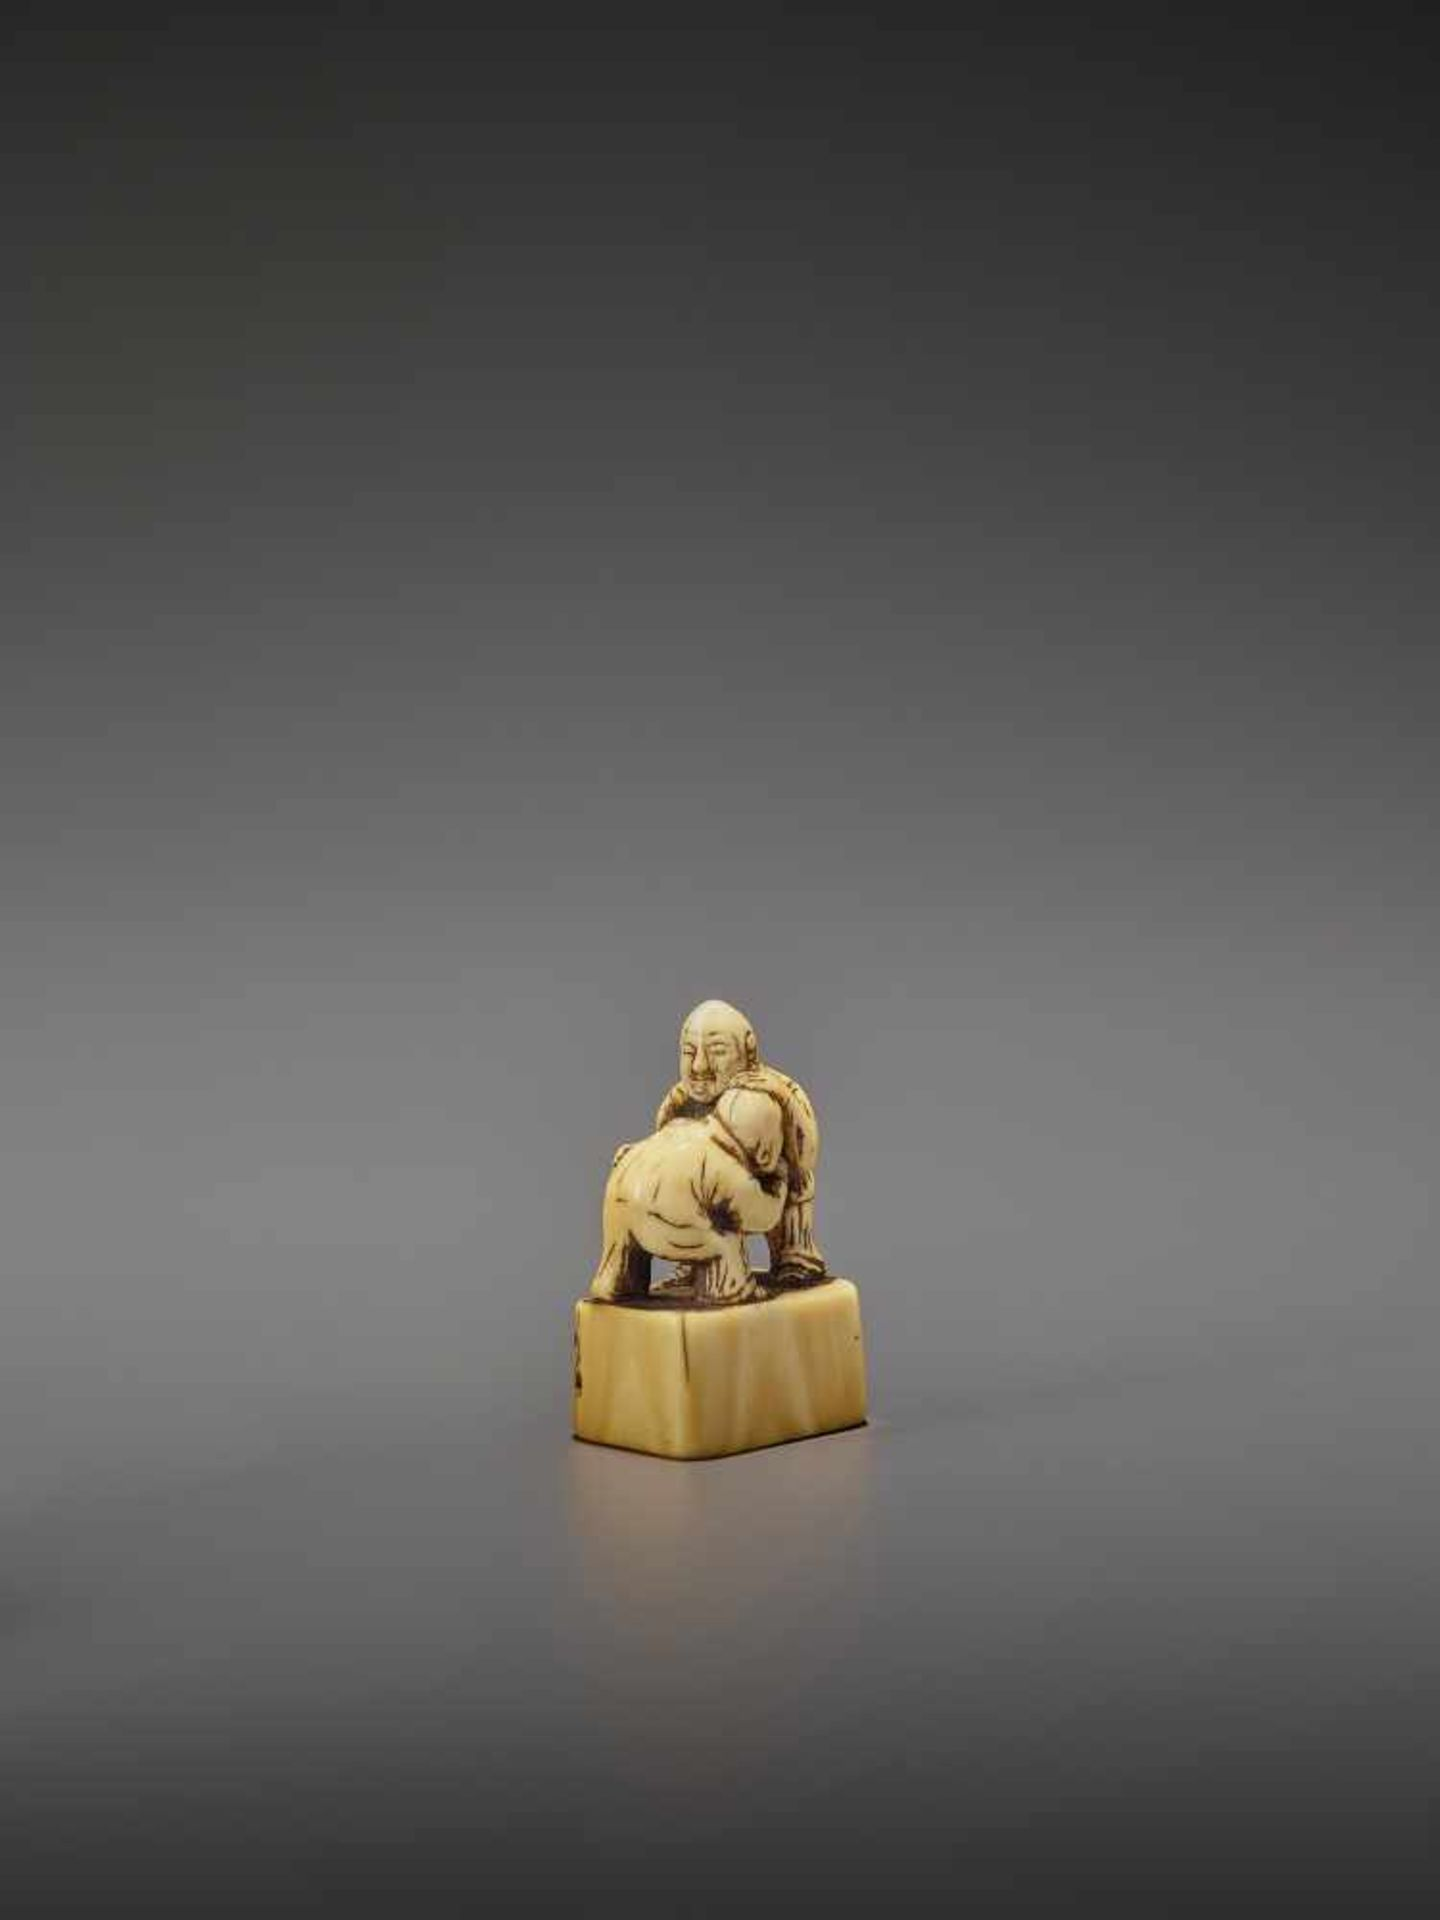 AN EARLY IVORY NETSUKE OF TWO CHINESE WRESTLERS UnsignedJapan, early 18th century, Edo period (